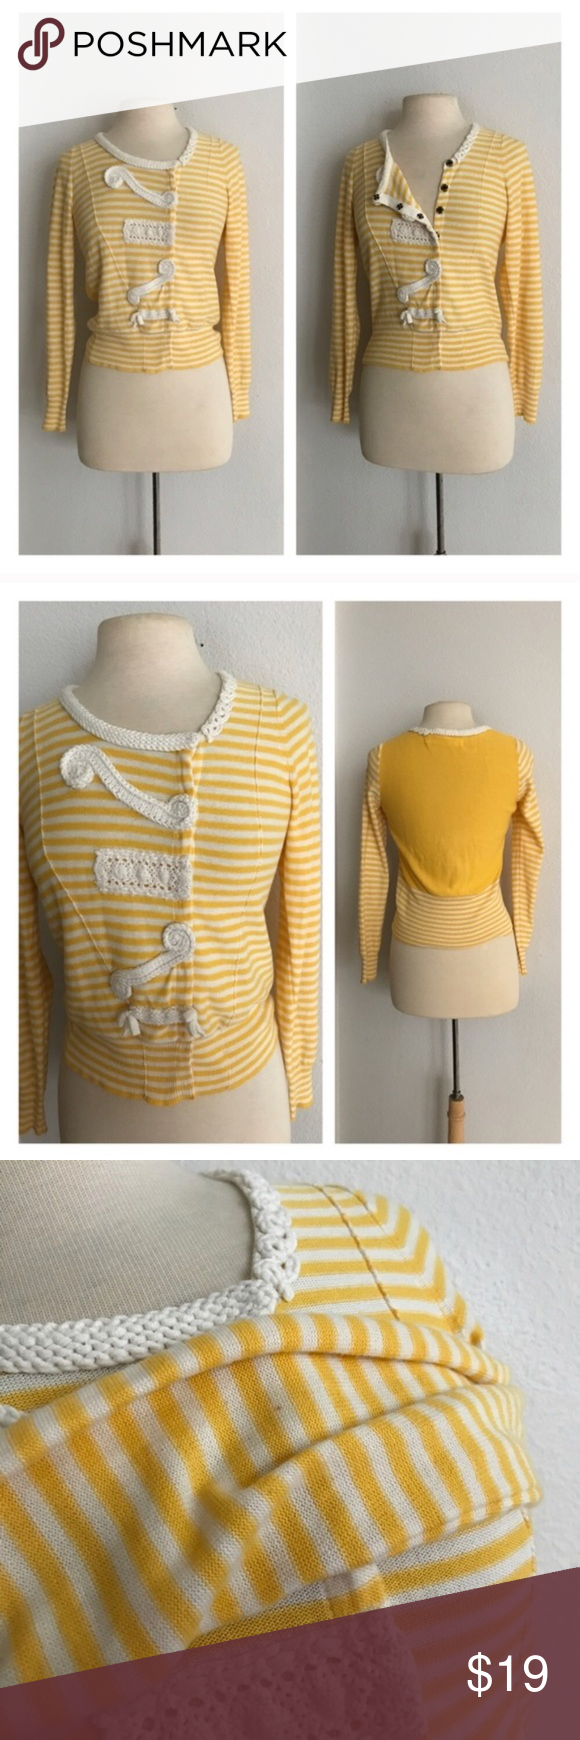 "Sparrow Loose Lines sweater Sparrow Loose Lines sweater. Size S. Measures 21"" long with a 32"" bust. Snap closures on the front. Lightweight and very stretchy. There is a mark on the left sleeve, but if you look closely it's a stitching error (it's yellow like the sweater). There is also a dark mark on the right sleeve. This has been washed and it did not come out. Both marks are on the inner part of the sleeves so the damage cannot be seen when worn 💲Reasonable offers accepted  ✅Bundle…"